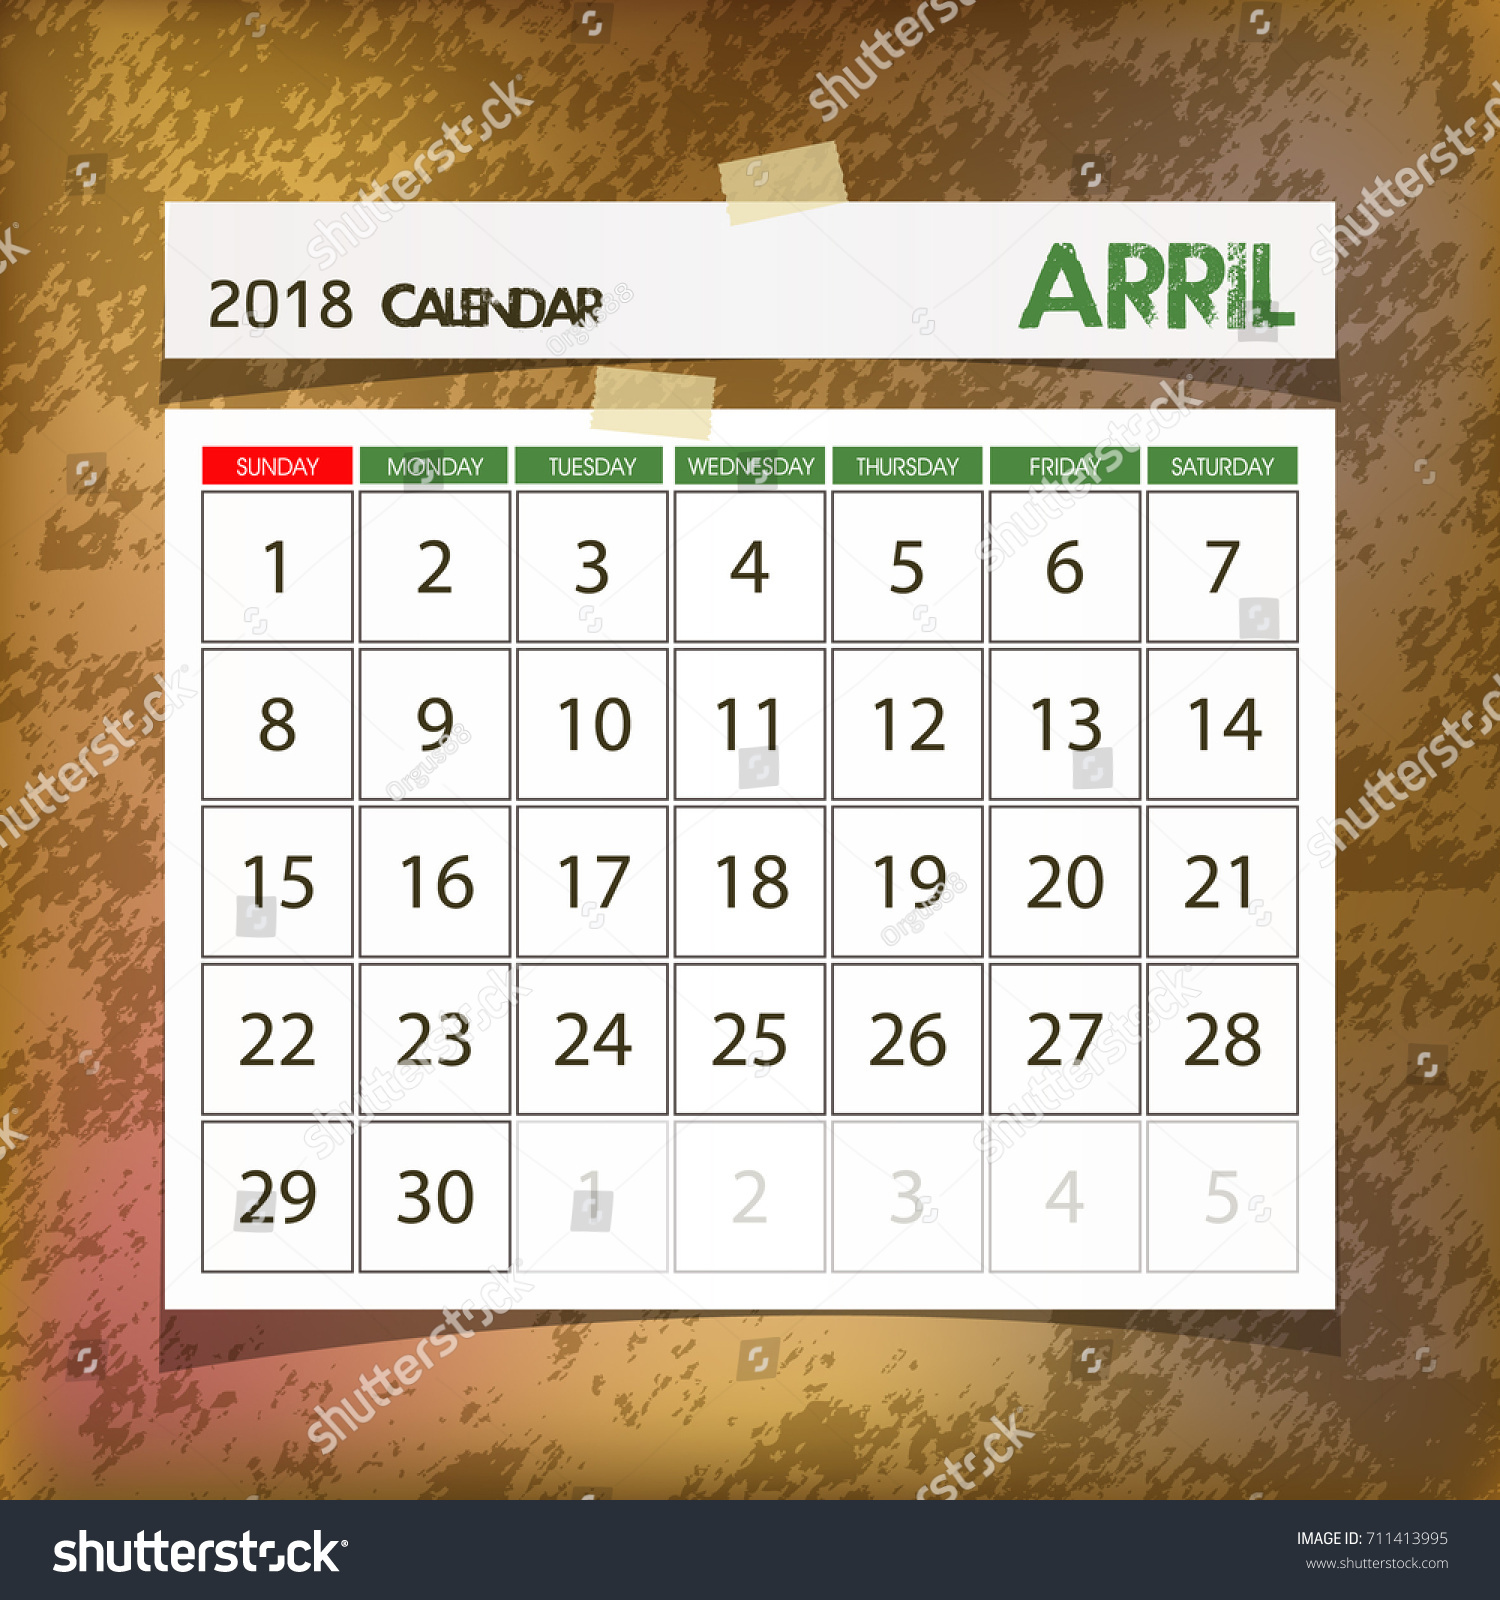 calendar 2018 april vintage paper on grunge background